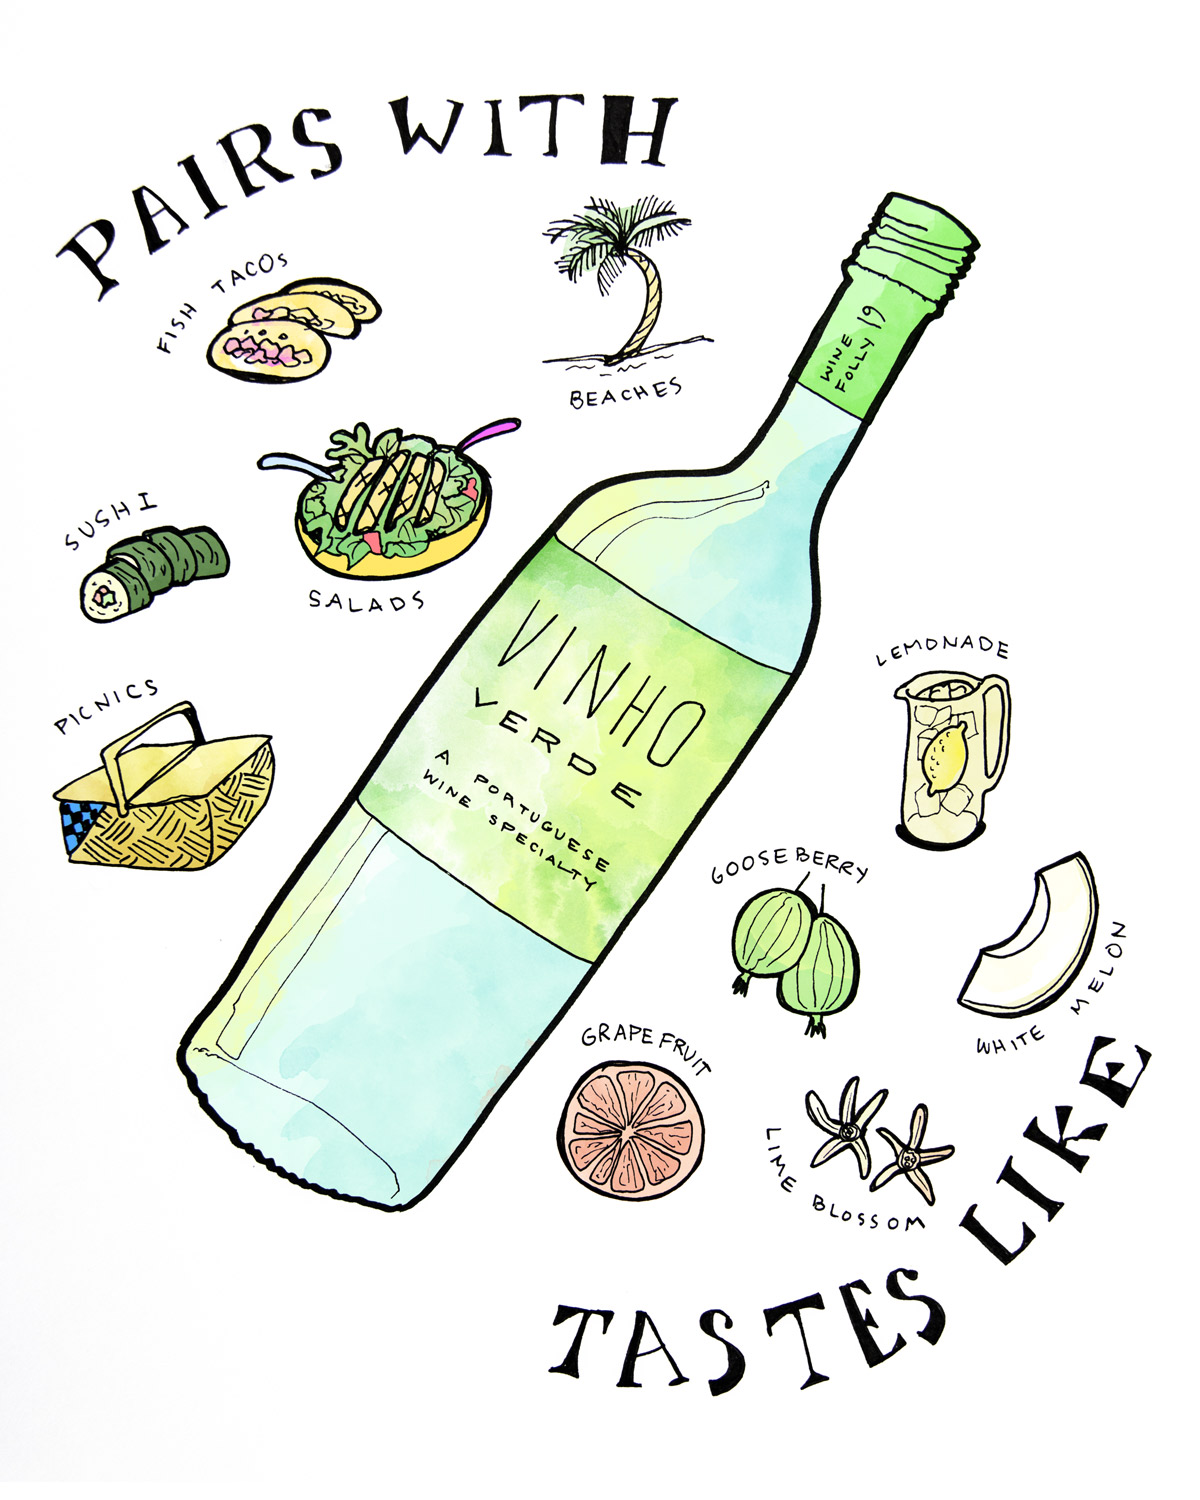 Vinho-Verde-Wine-Tasting-Pairing-Illustration-WineFolly